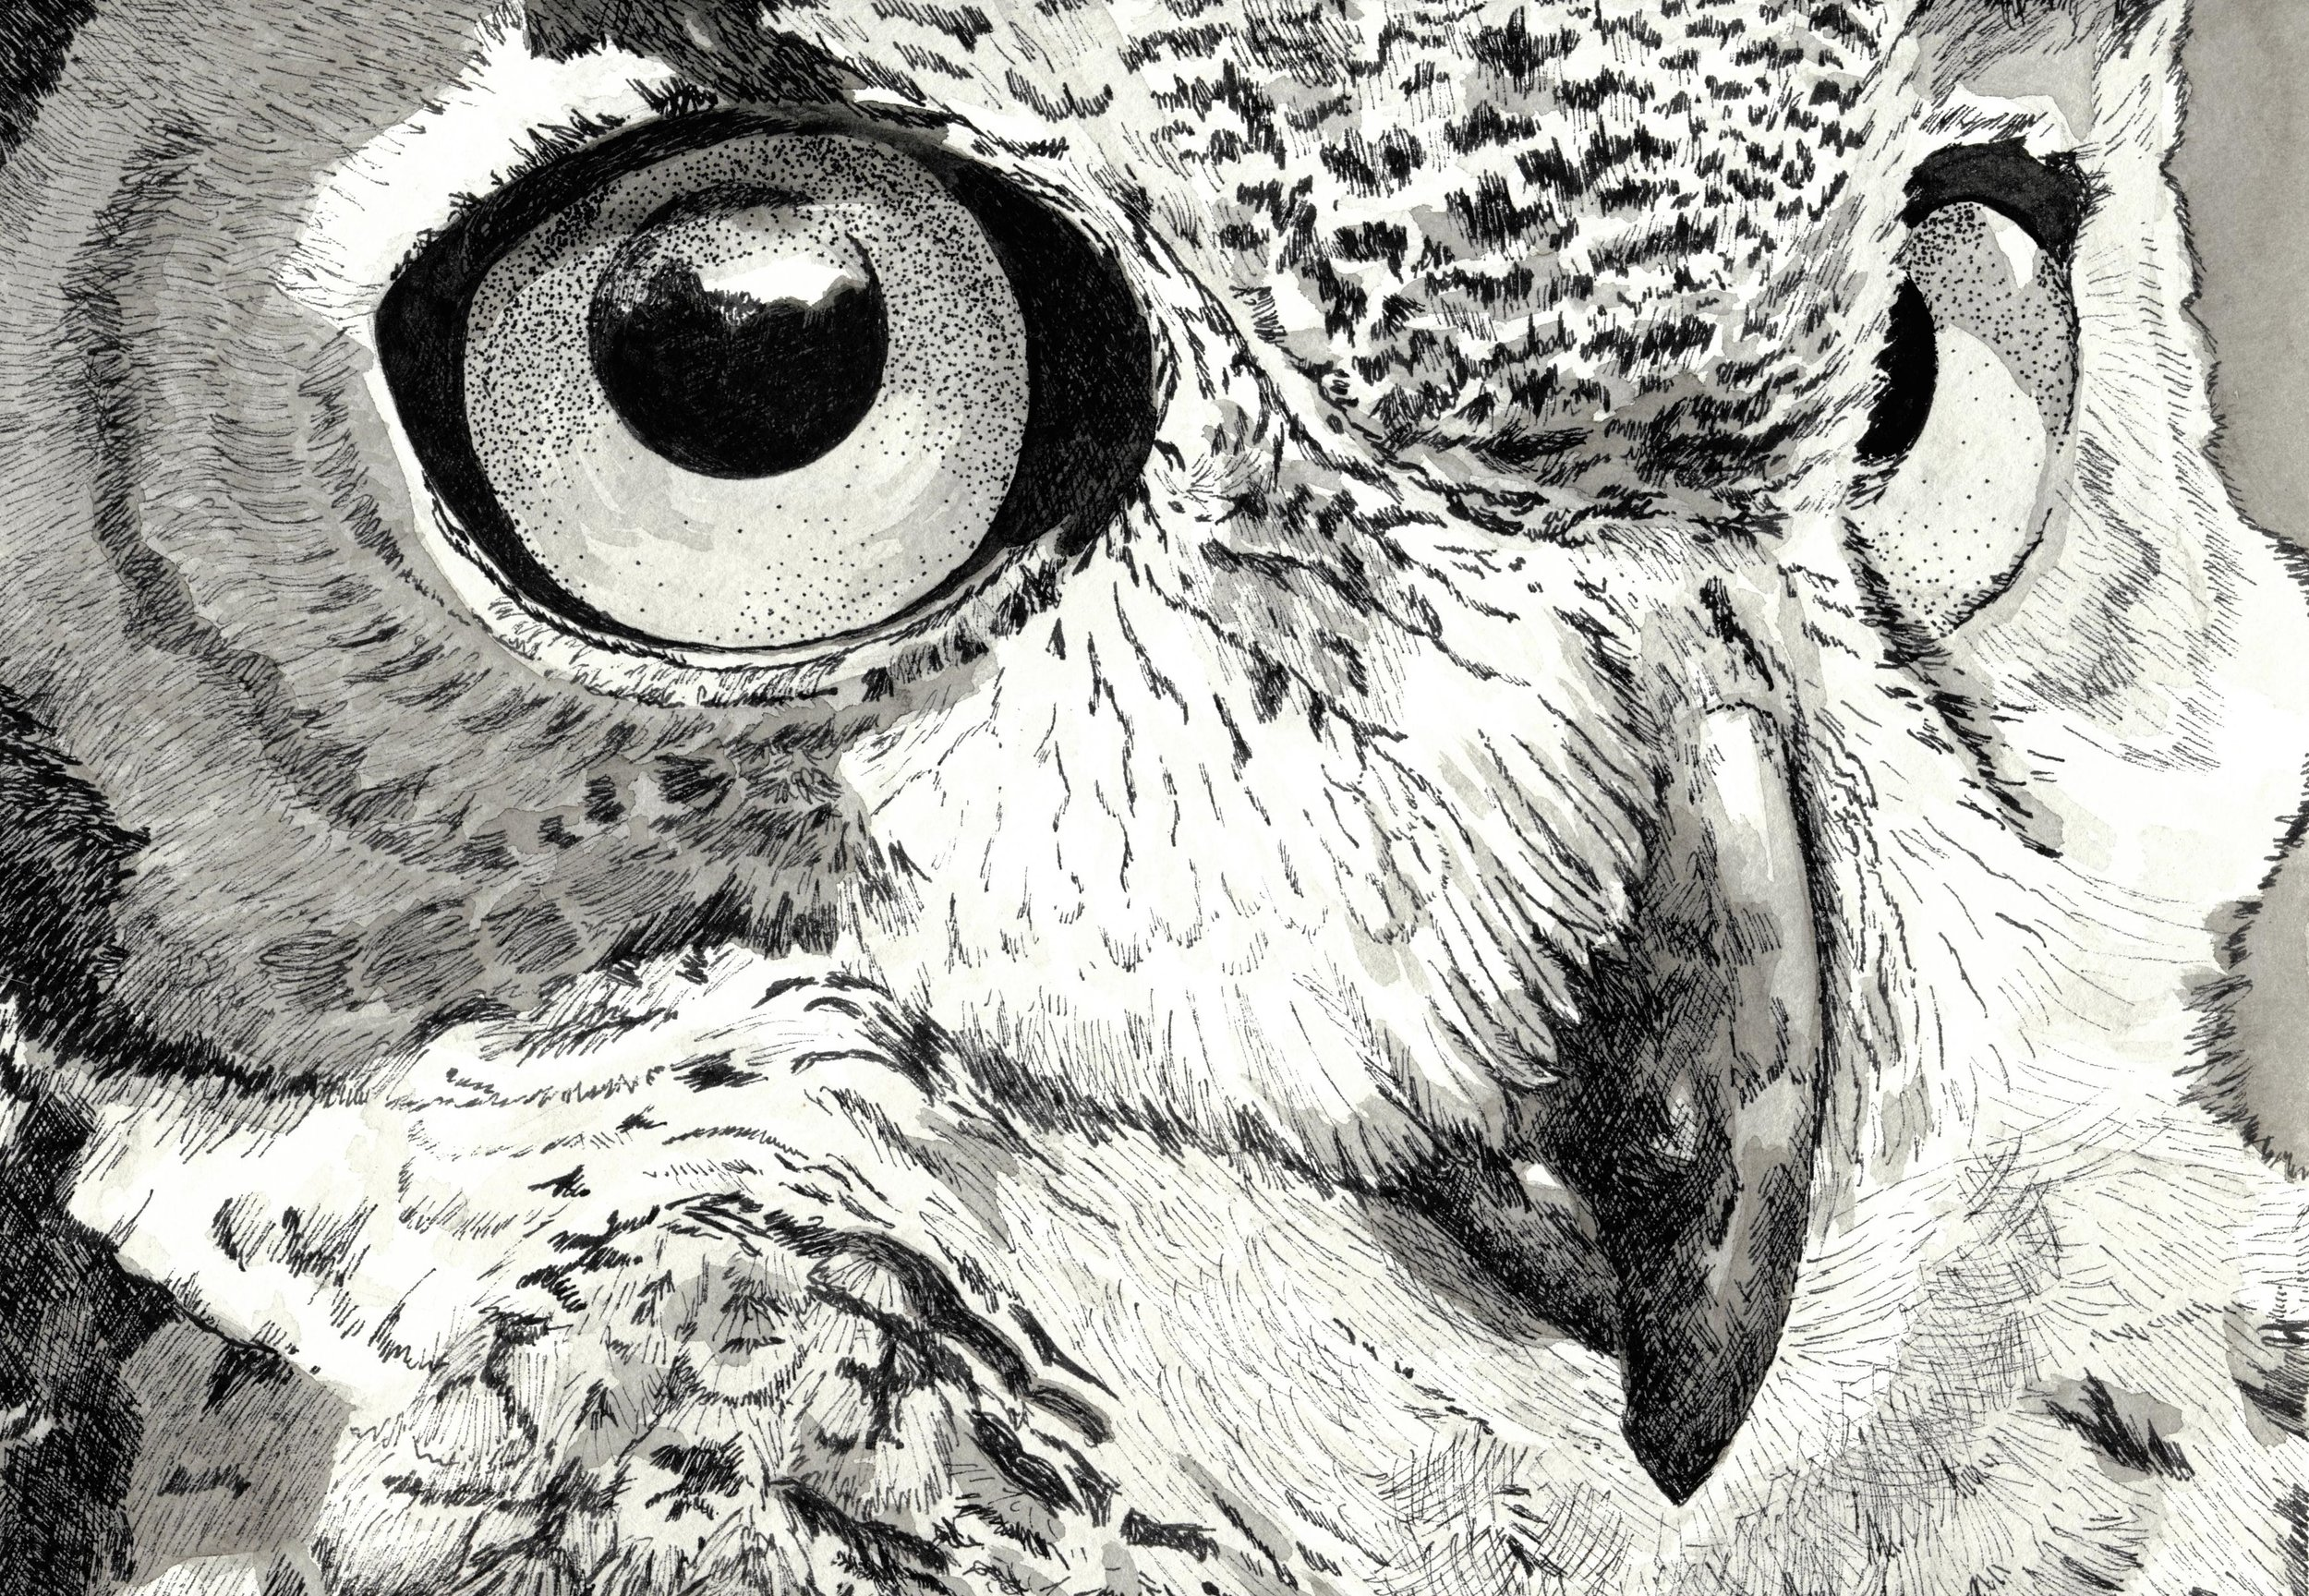 Carolyn_Byers_DO_NOT_USE_WITHOUT_PERMISSION_greathornedowl_ink.jpg